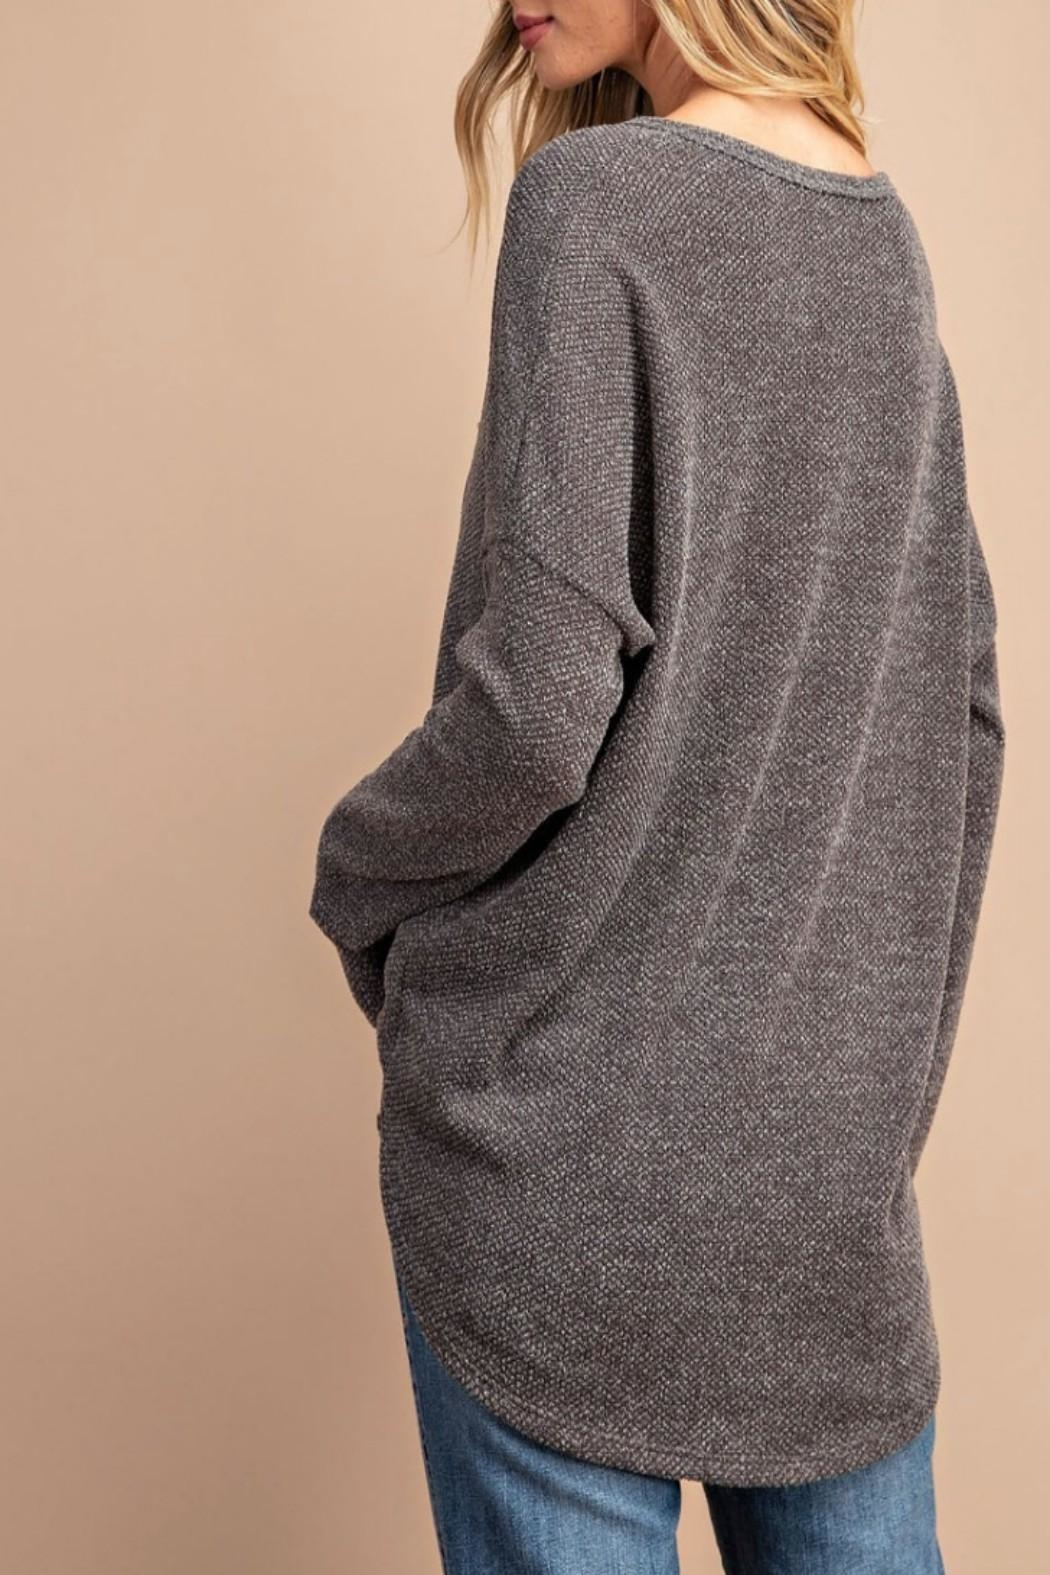 eesome Soft Button Top - Front Full Image